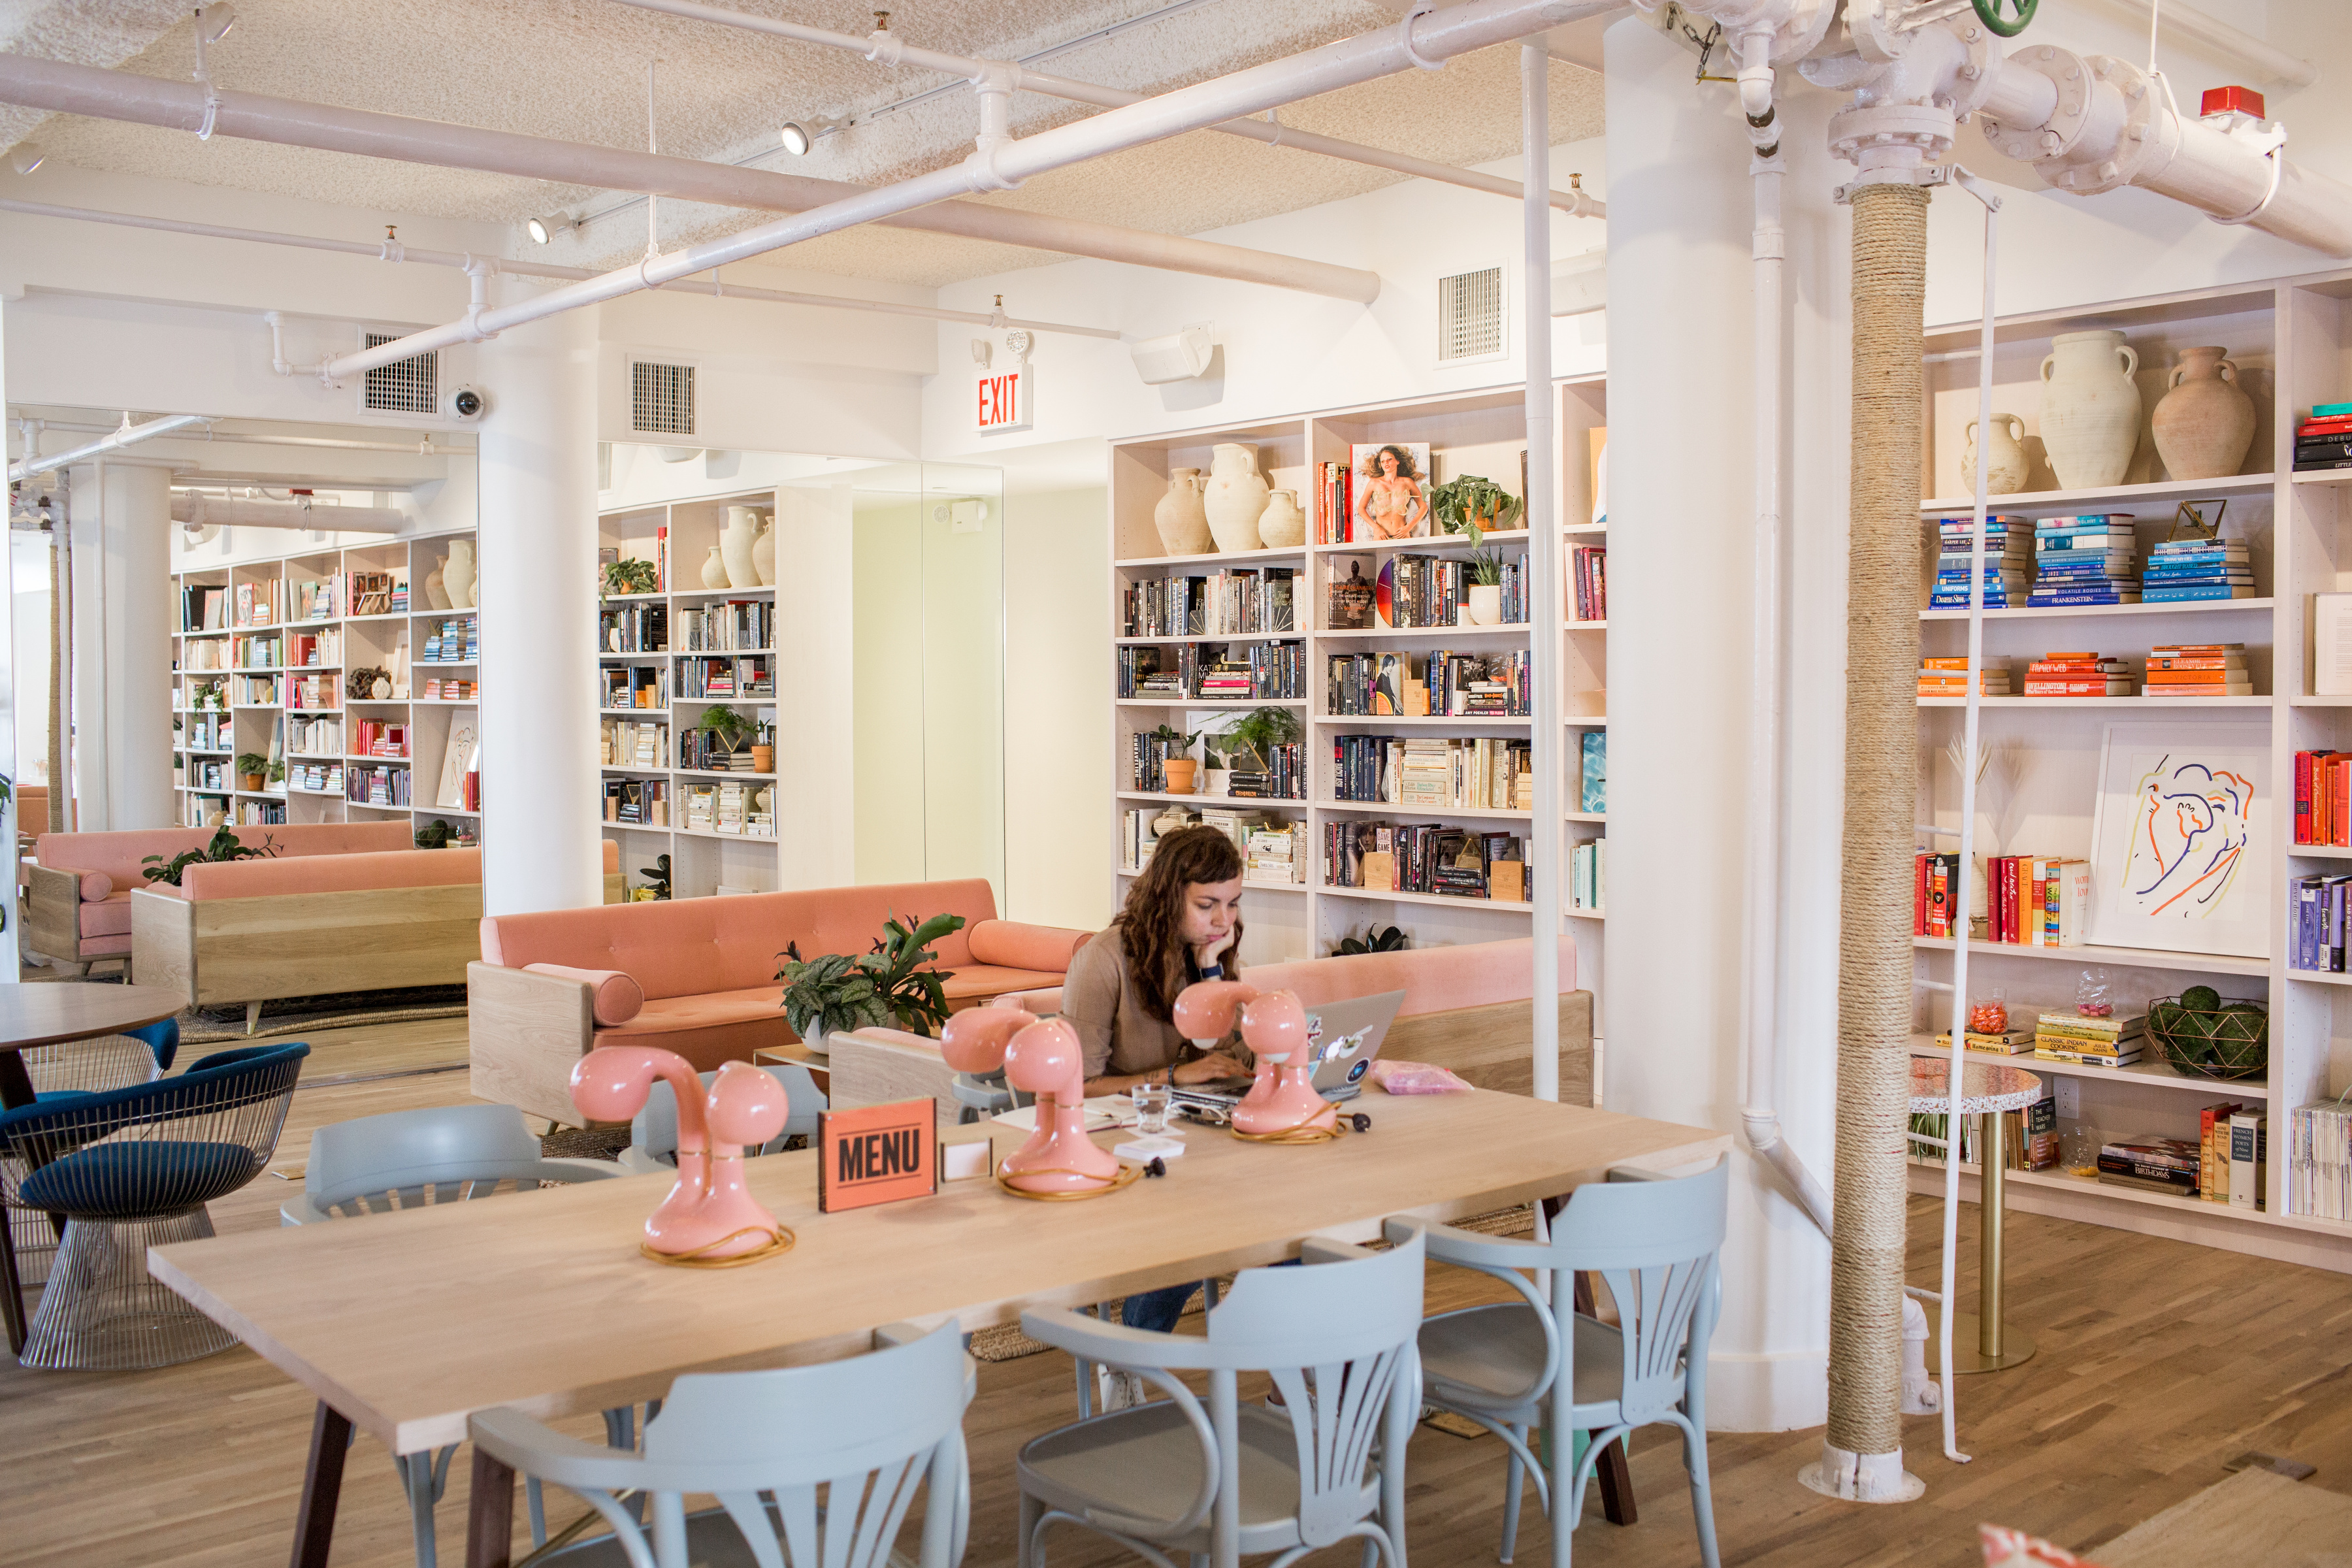 October 20th, 2016. Manhattan, NY. Laia Garcia, Deputy Editor at Money Magazine, works at The Wing. The Wing is a new co-working space for women only located at 45 East 20th street in Manhattan.